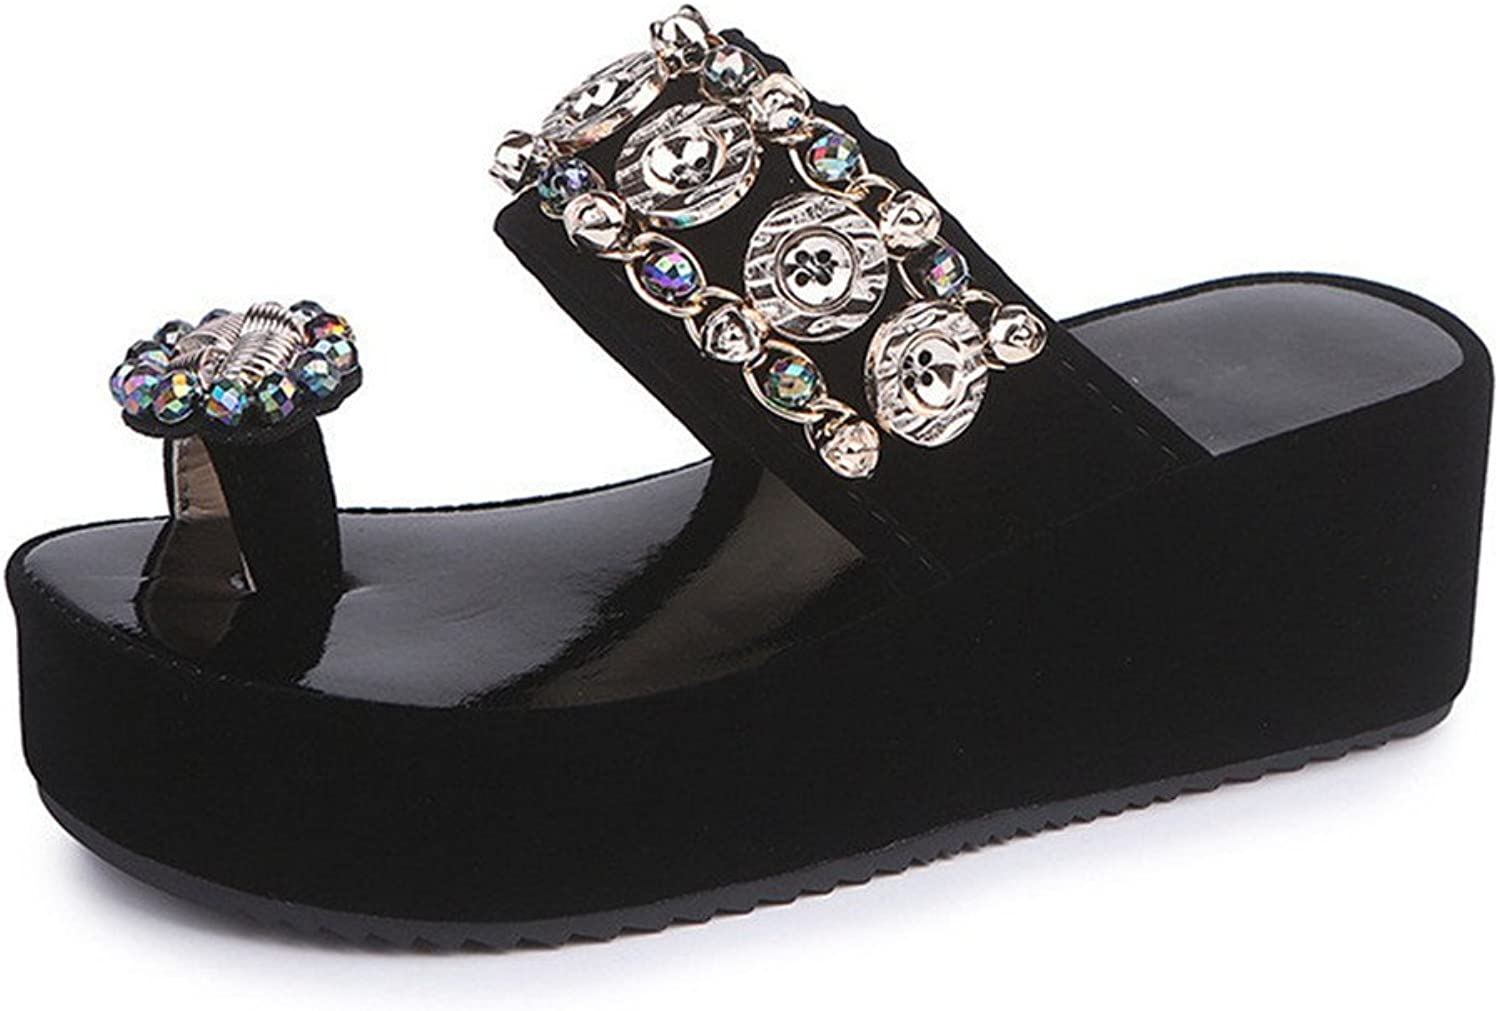 Wedges Flip Flops Flat Sandals for Women,Summer Rhinestone Ring Toe Slipper Beach shoes